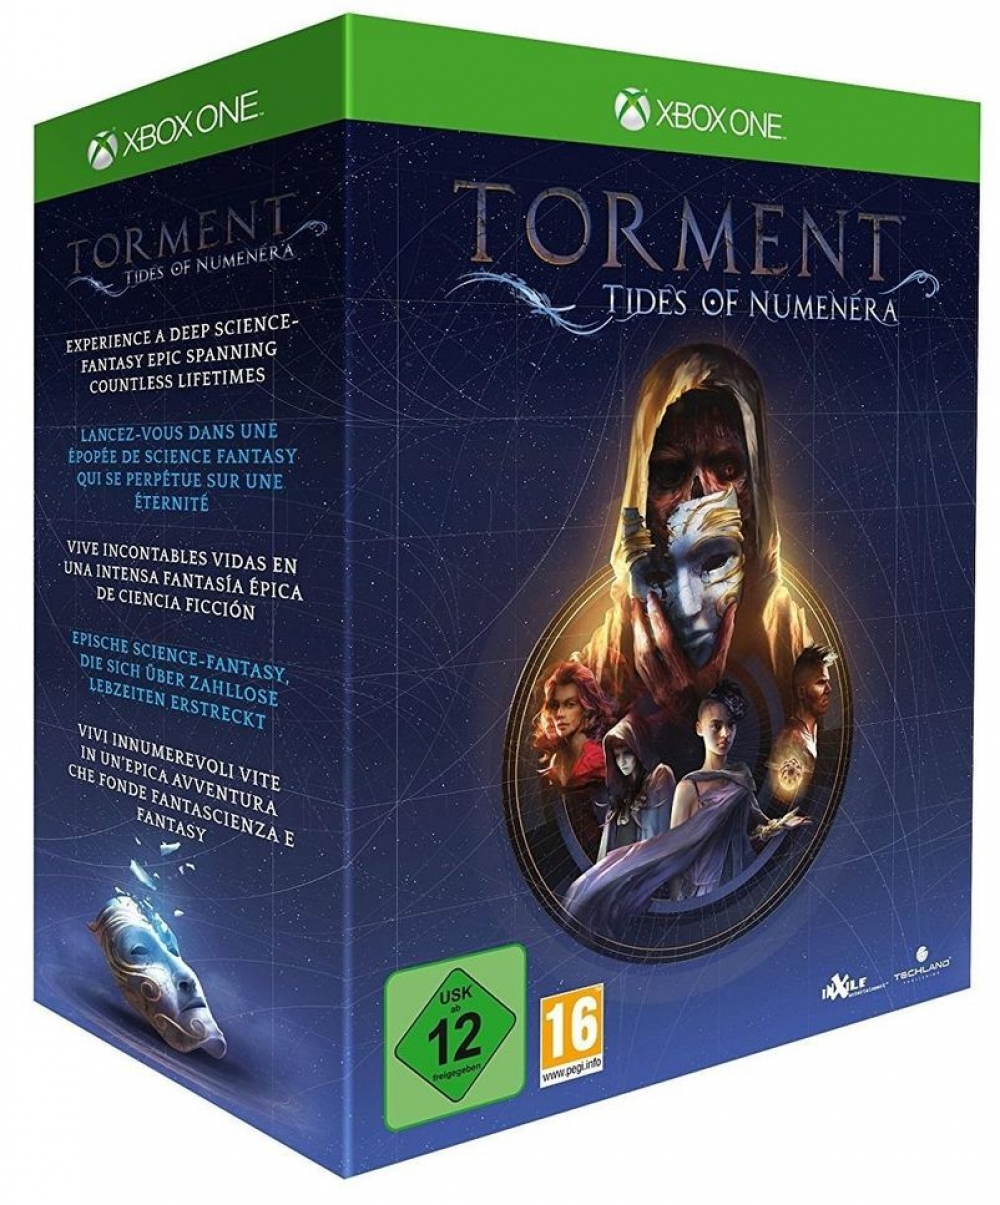 Joc Torment Tides Of Numenera Collectors Edition pentru Xbox One imagine